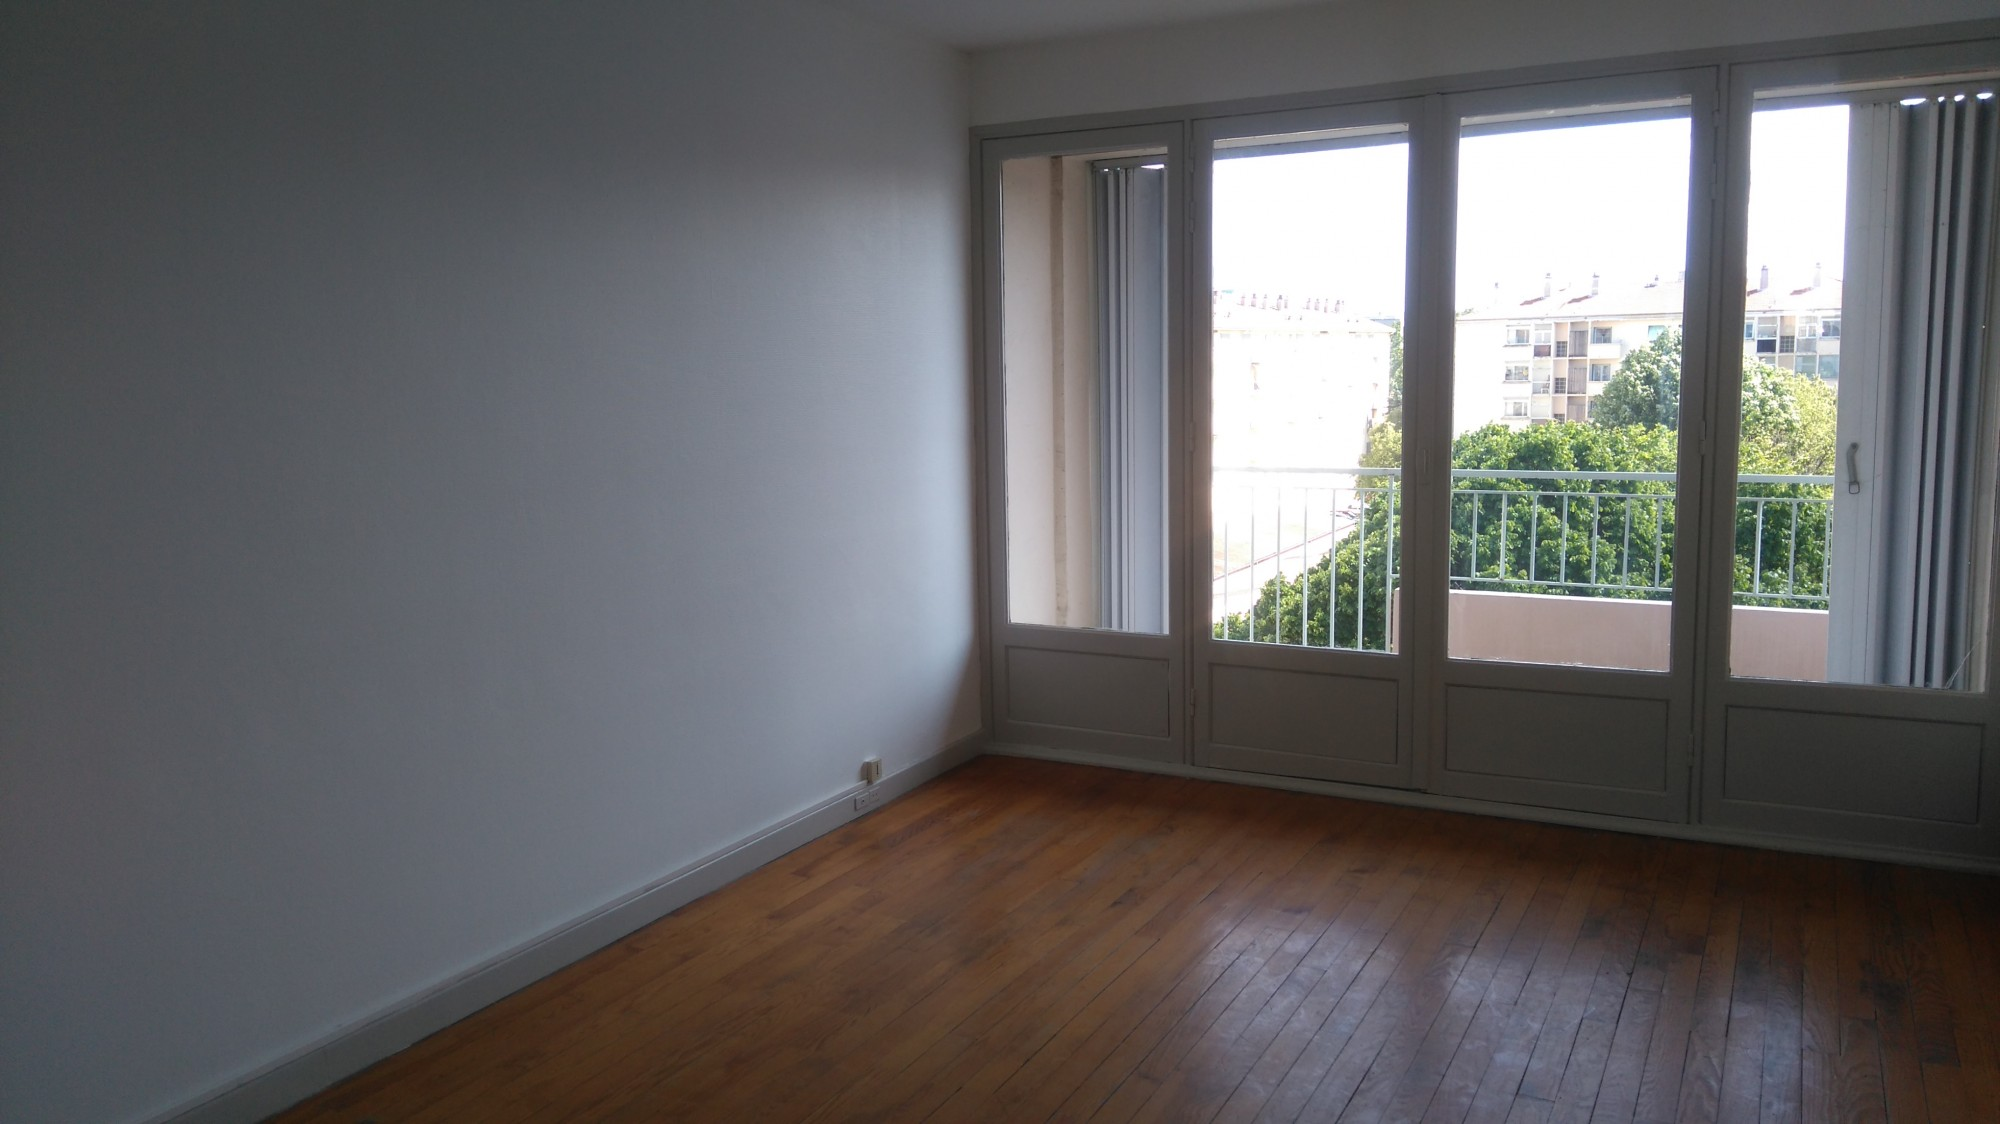 Valence location appartement t3 a chateauvert location agence immobili re valence cabinet - Location appartement meuble valence ...